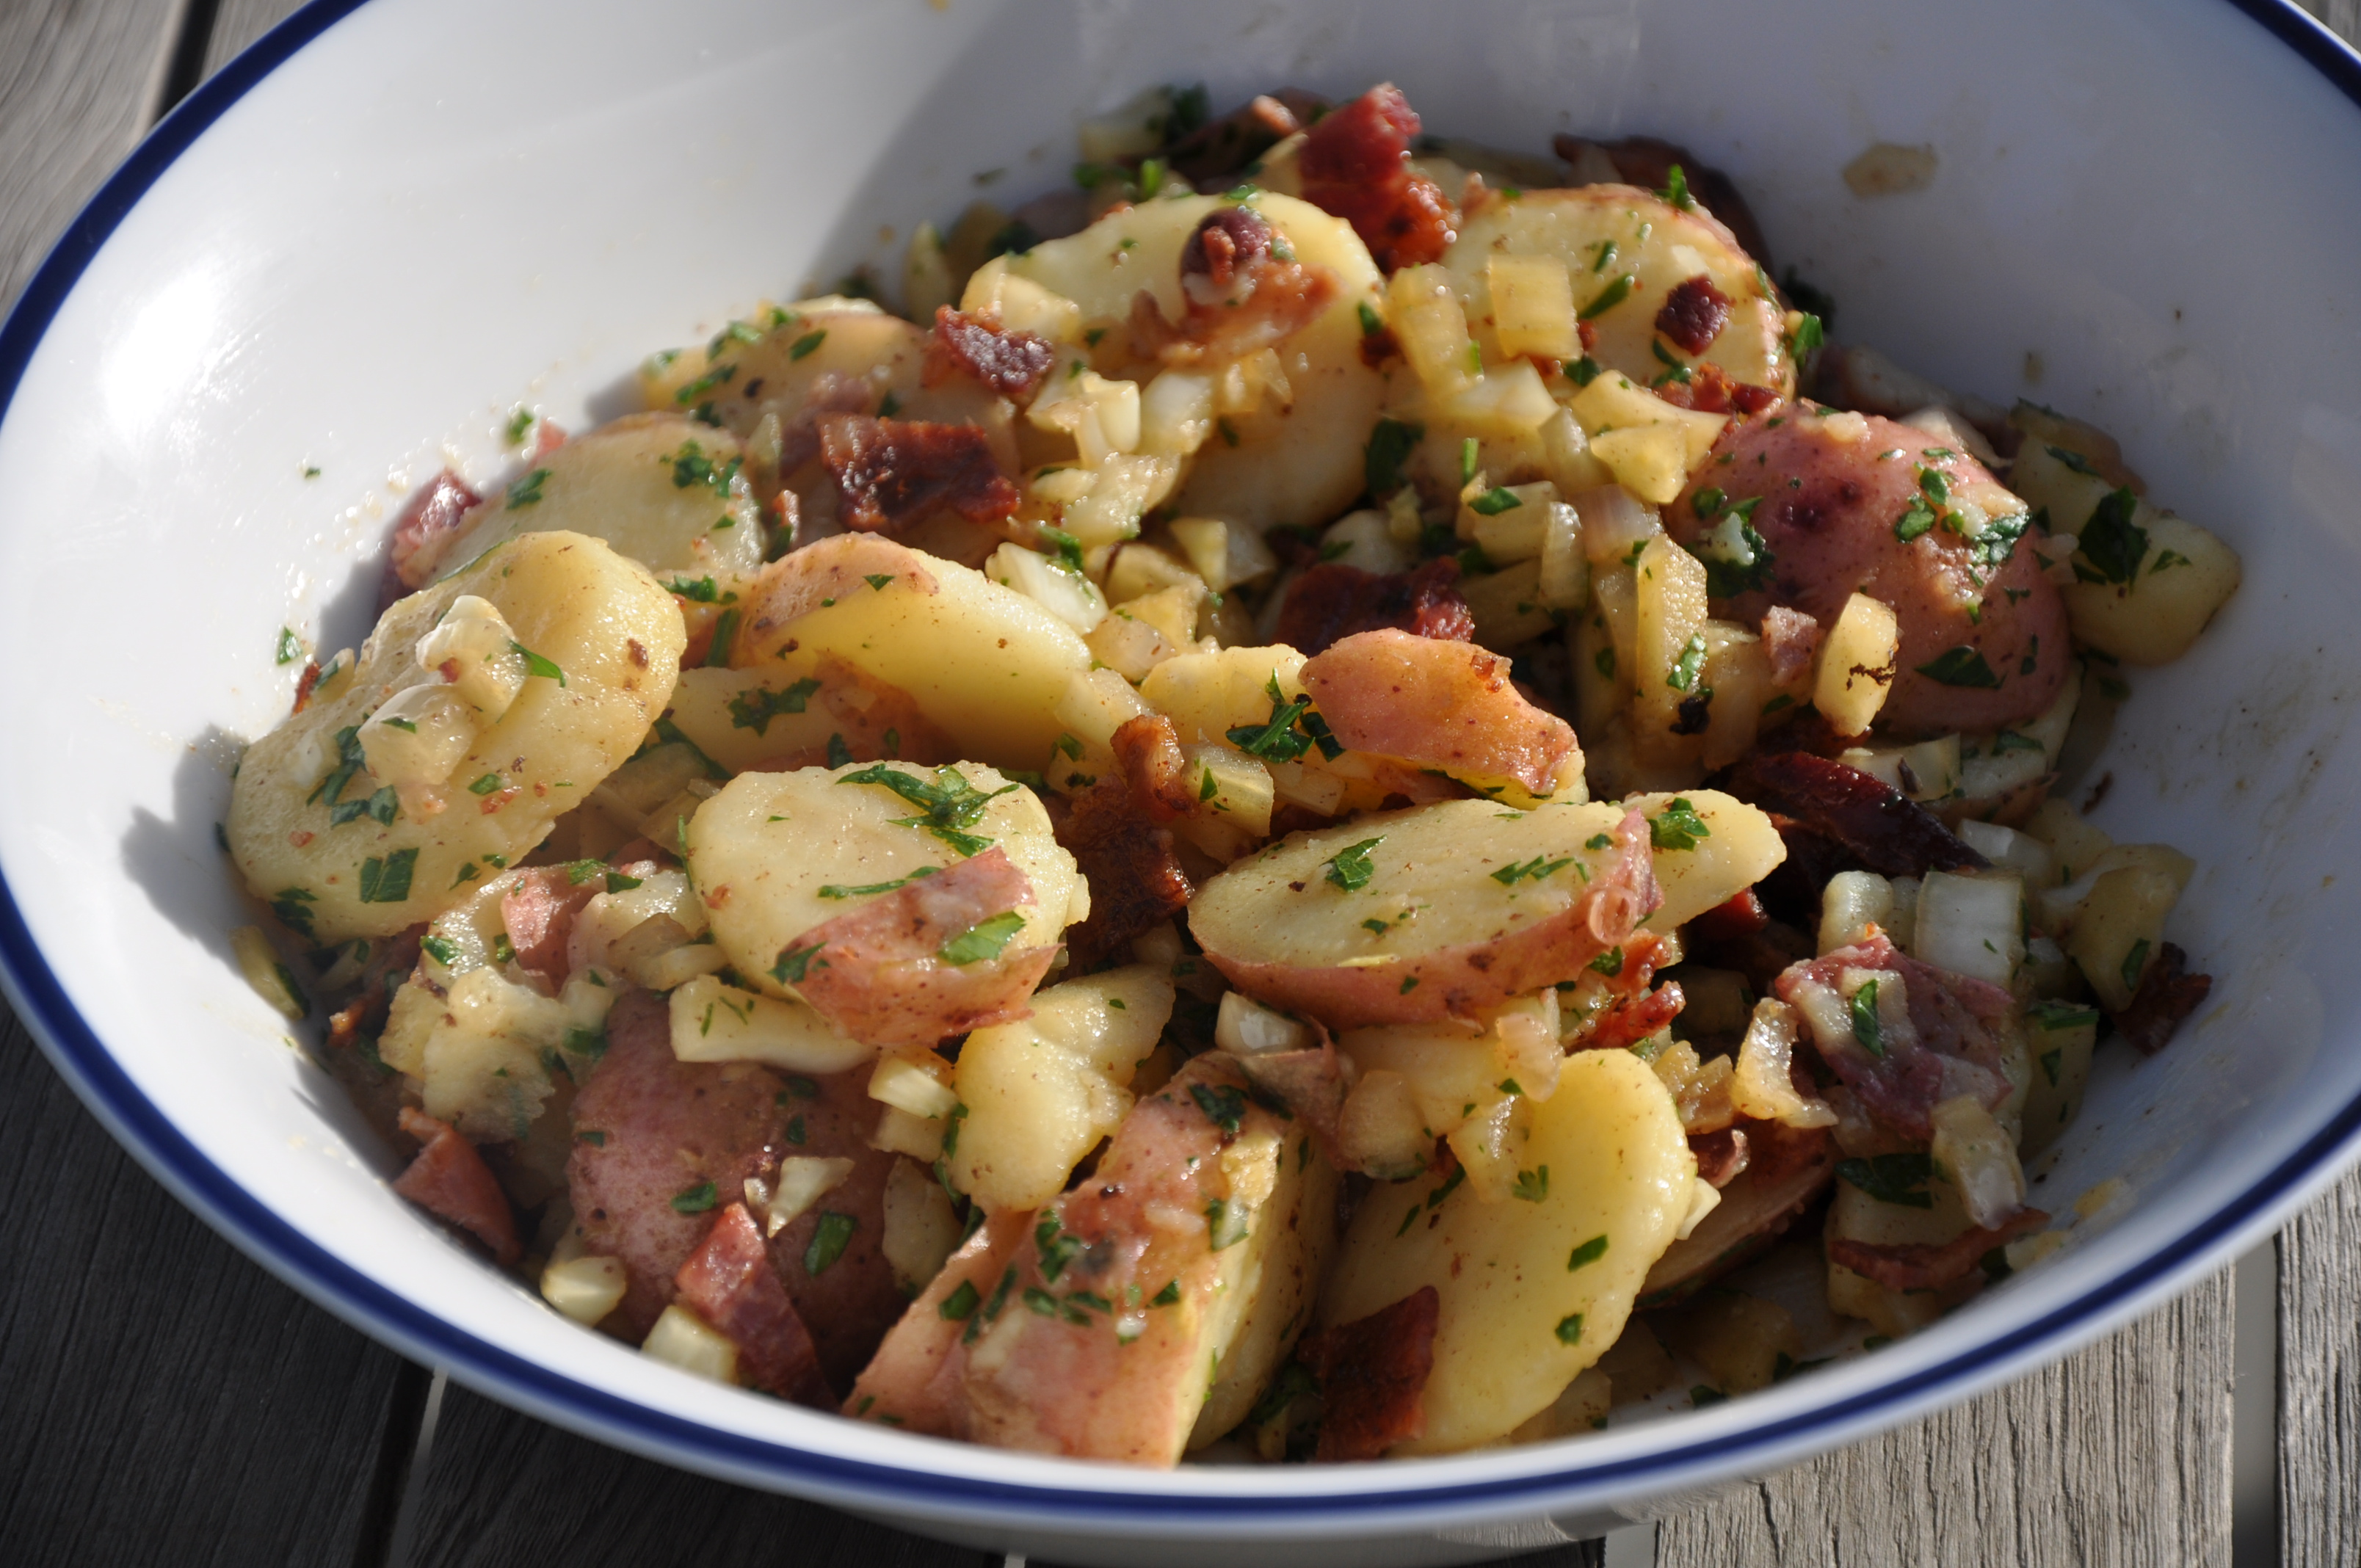 Potato Salad with Fennel and Shallot Relish and Bacon